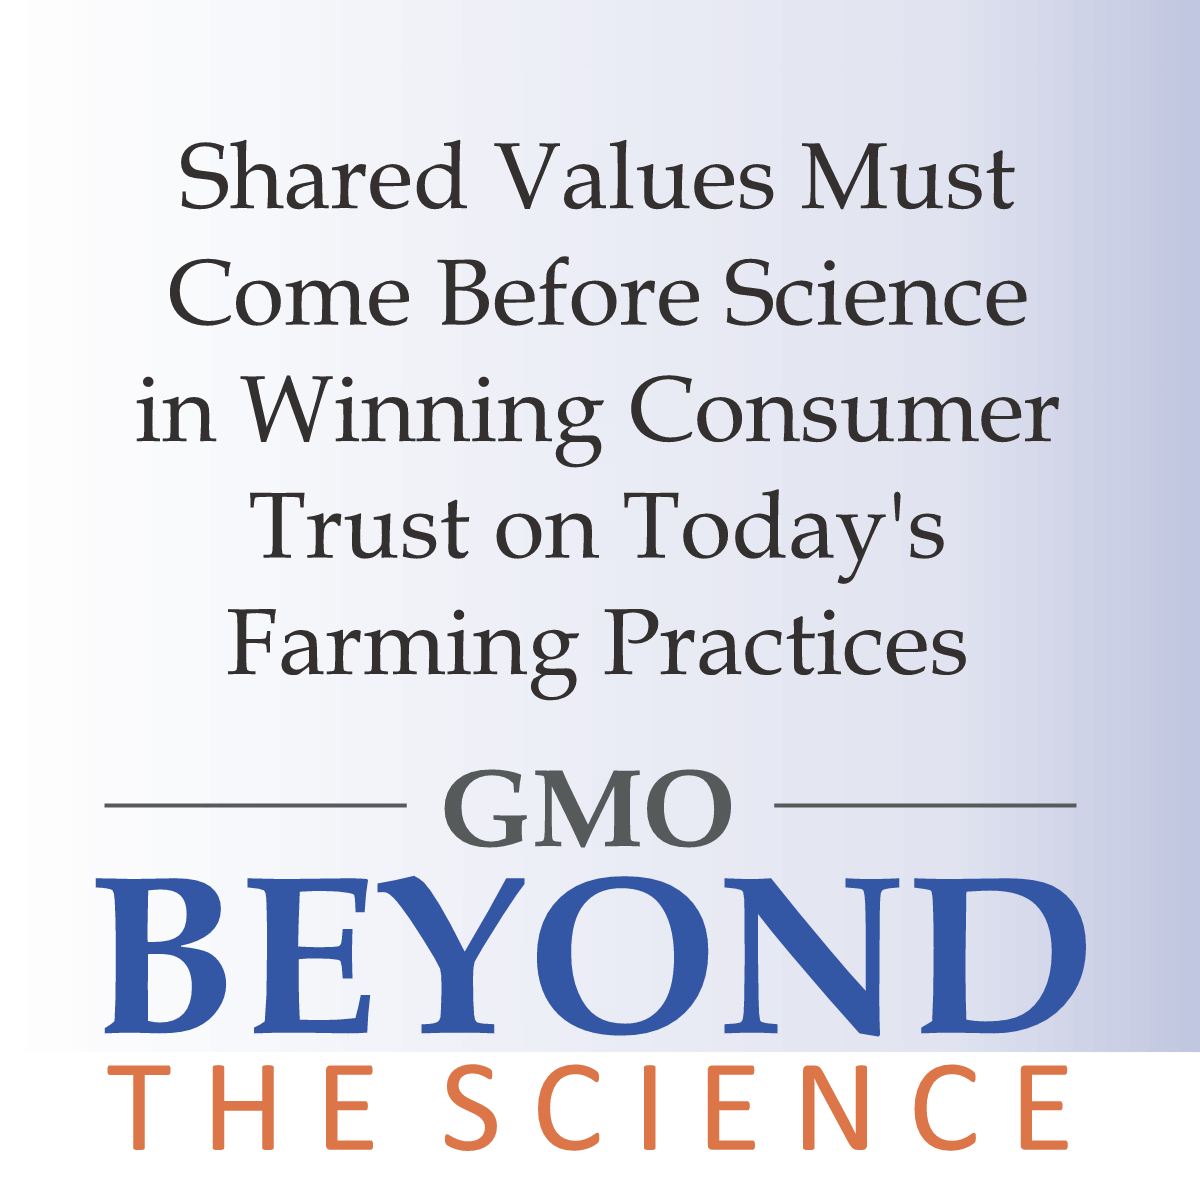 Shared Values Must Come Before Science in Winning Consumer Trust On Today's Farming Practices